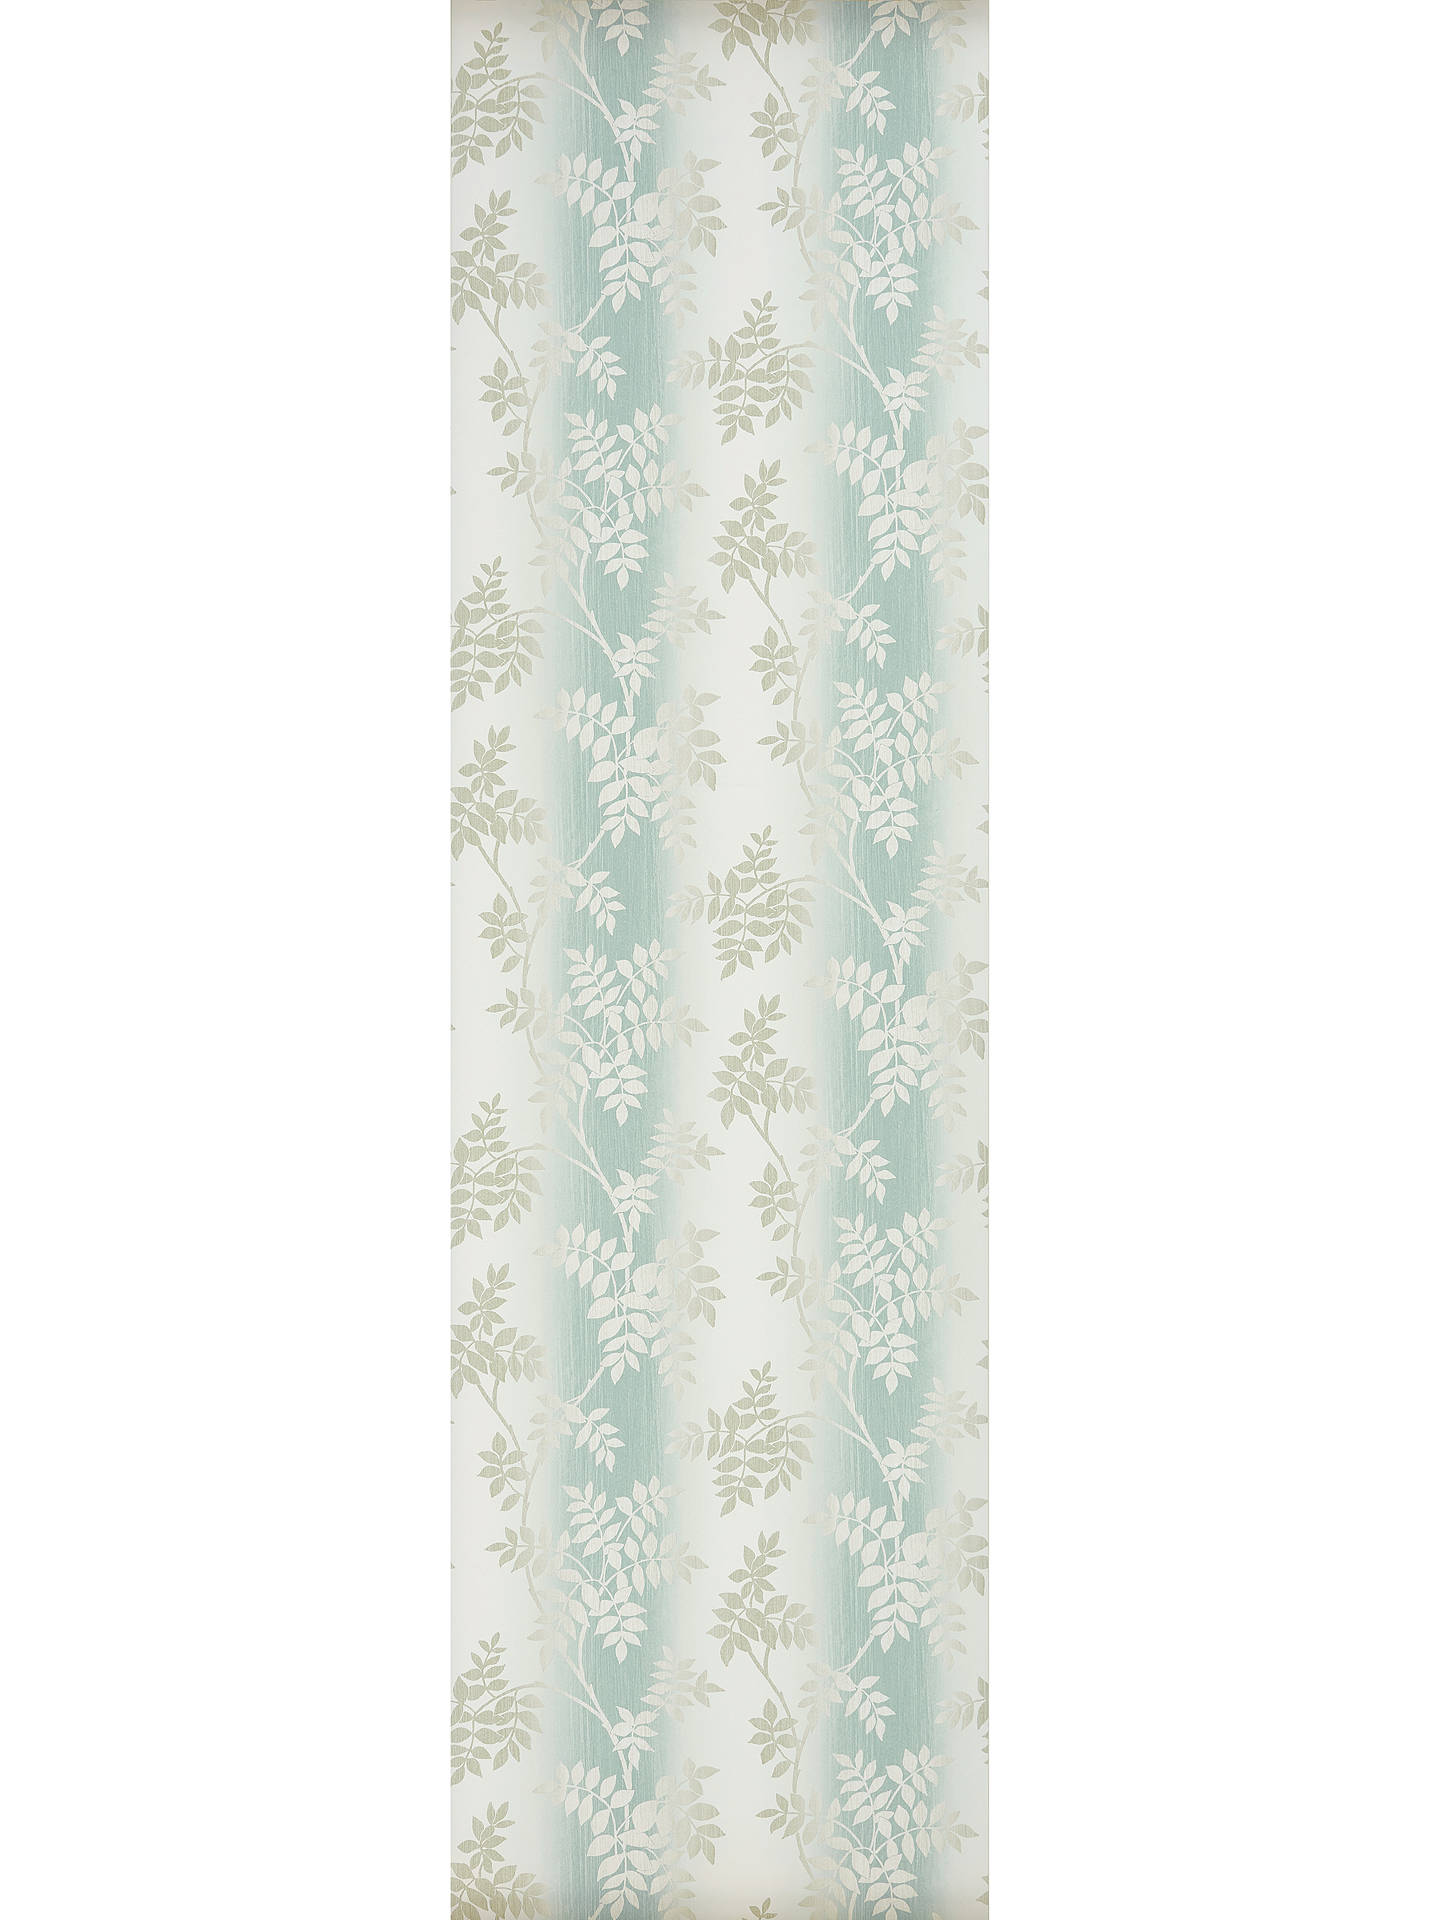 Buy Nina Campbell Posingford Wallpaper, NCW4394-03 Online at johnlewis.com